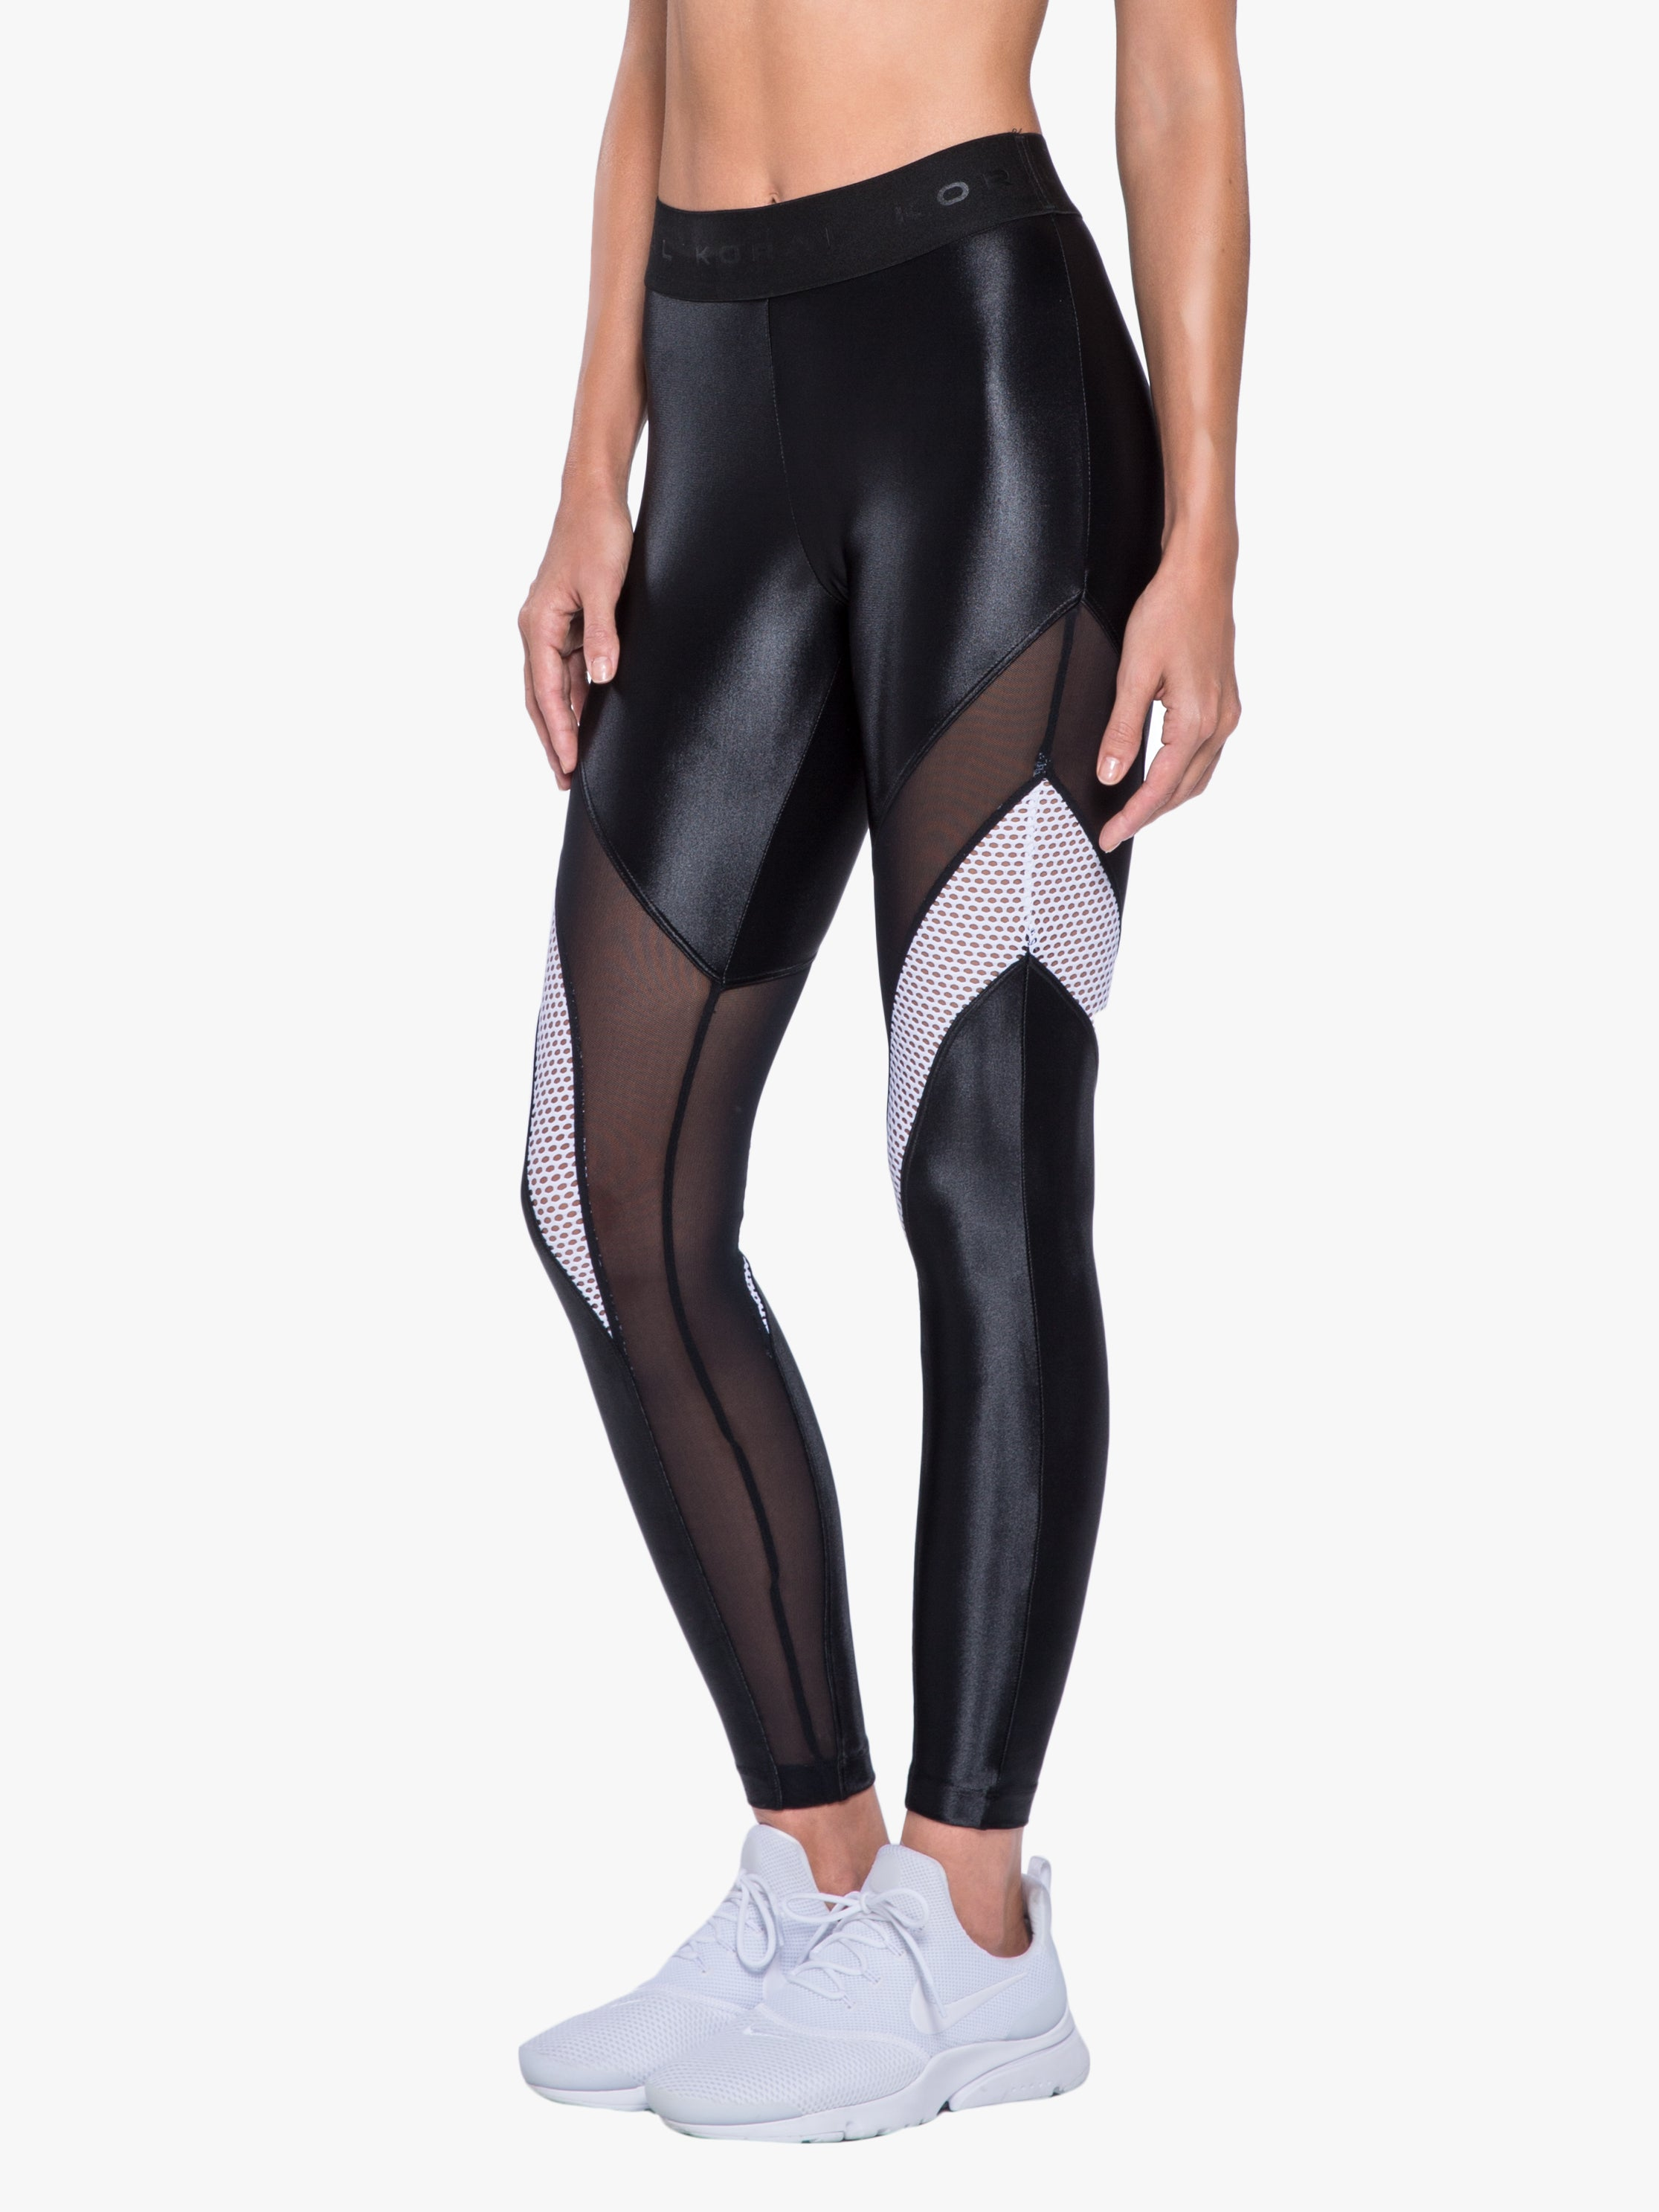 Frame High Rise Legging - Black/White